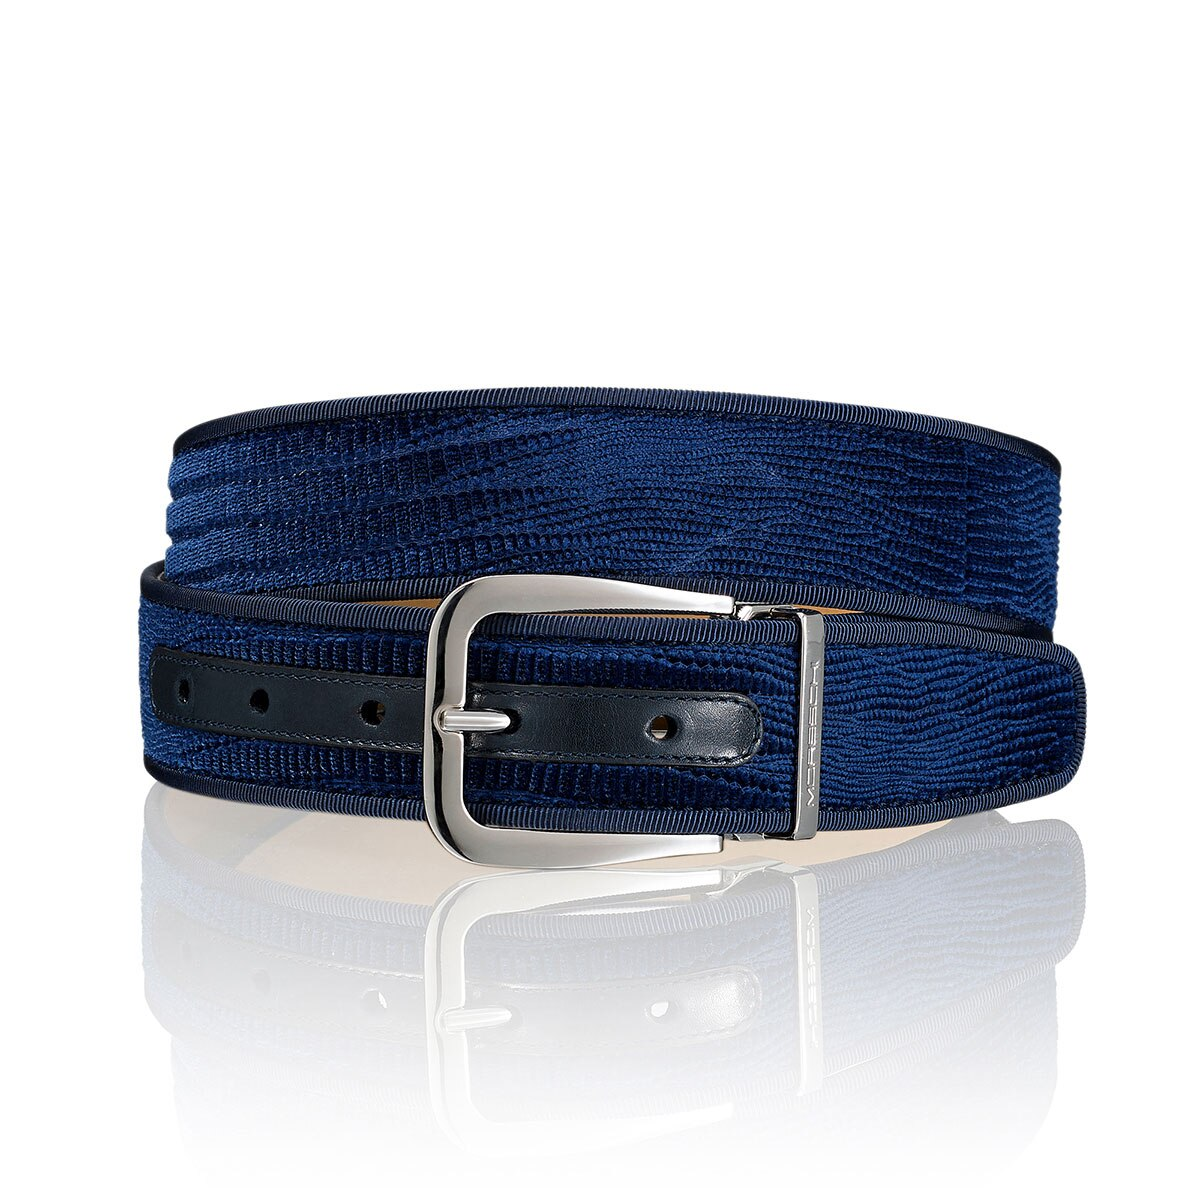 MEANDER Meander Matching Belt